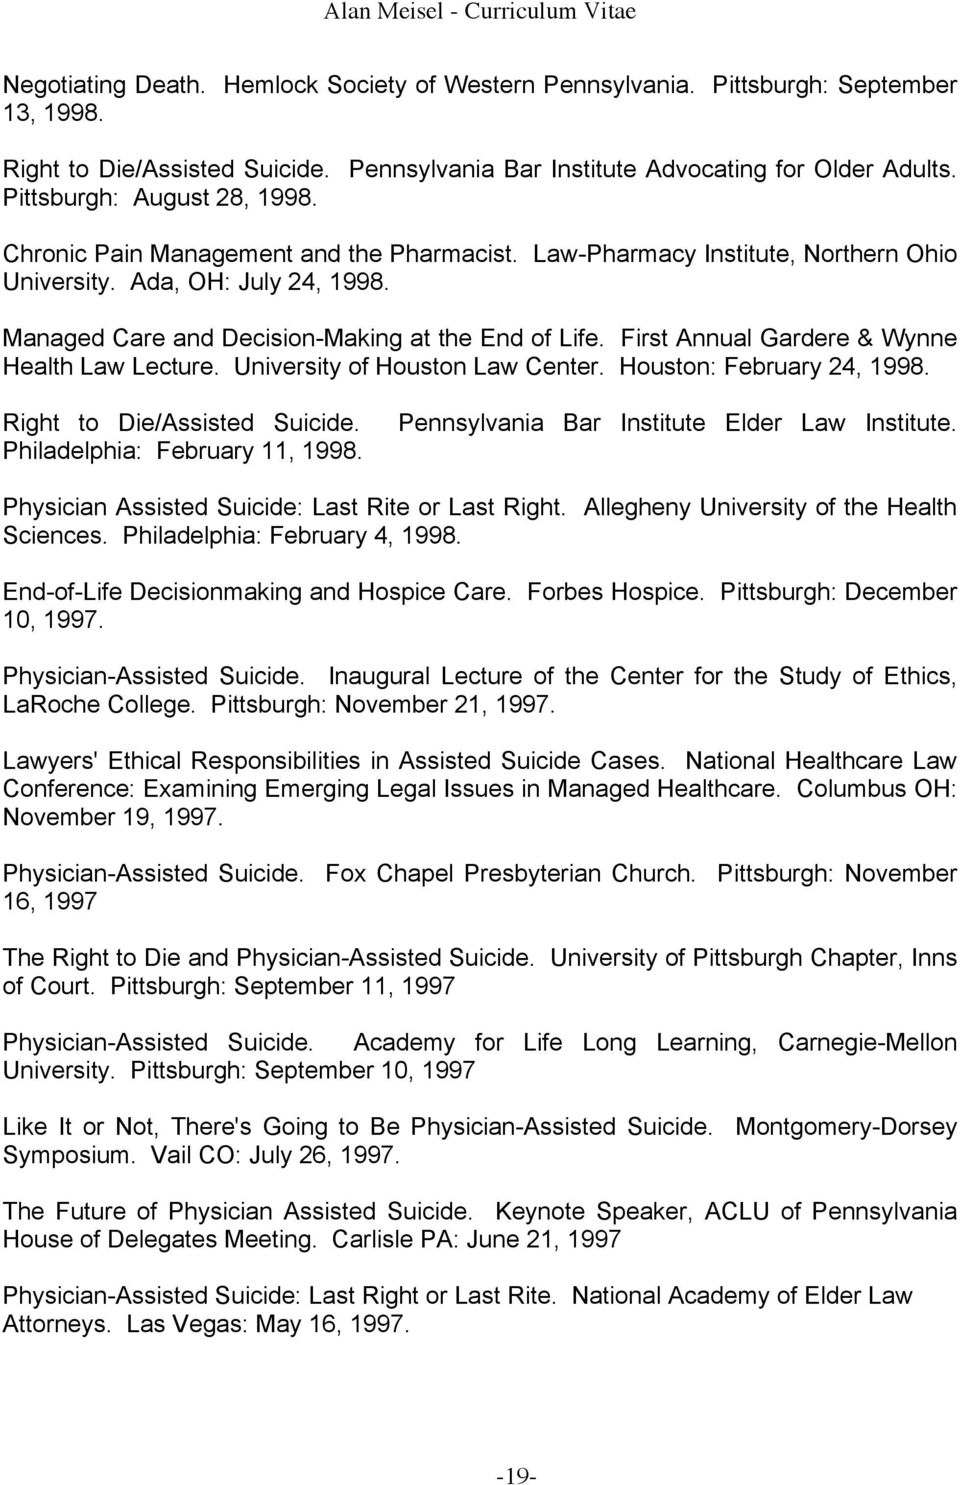 First Annual Gardere & Wynne Health Law Lecture. University of Houston Law Center. Houston: February 24, 1998. Right to Die/Assisted Suicide. Philadelphia: February 11, 1998.